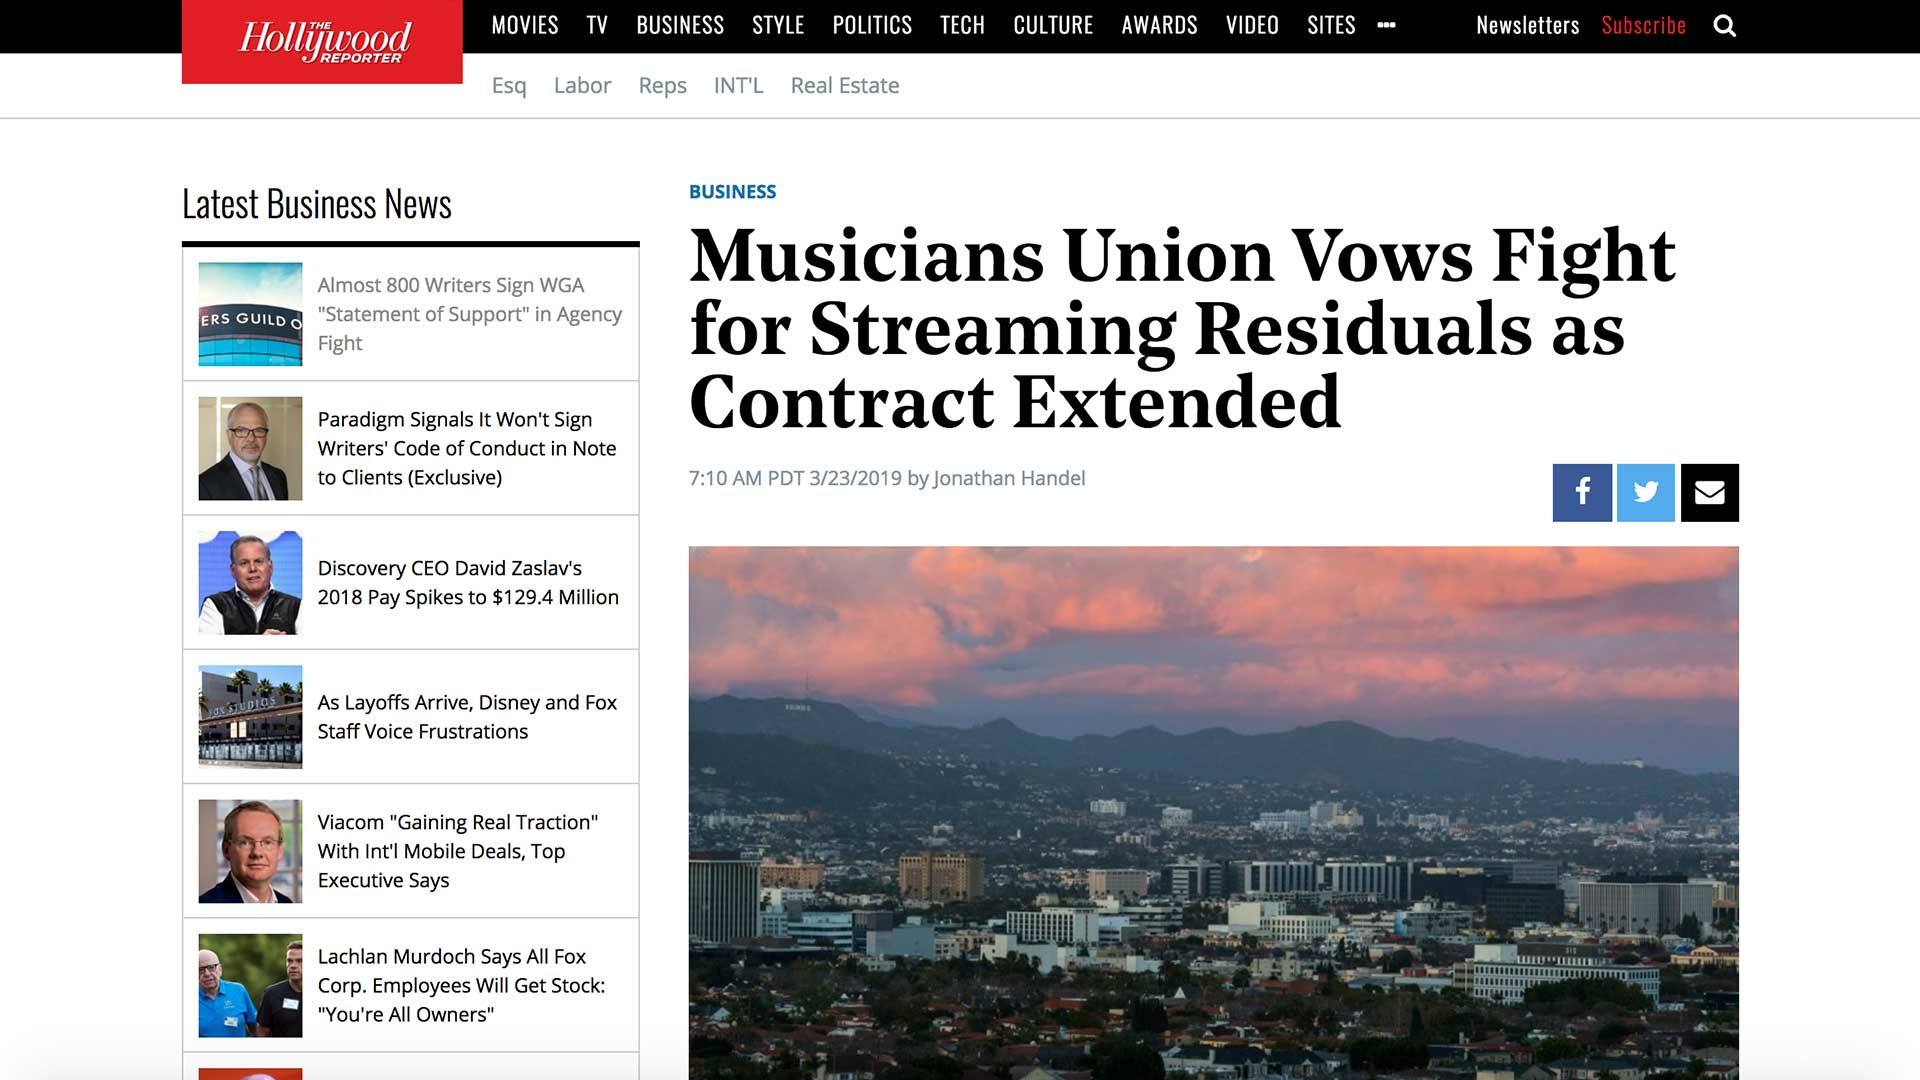 Fairness Rocks News Musicians Union Vows Fight for Streaming Residuals as Contract Extended